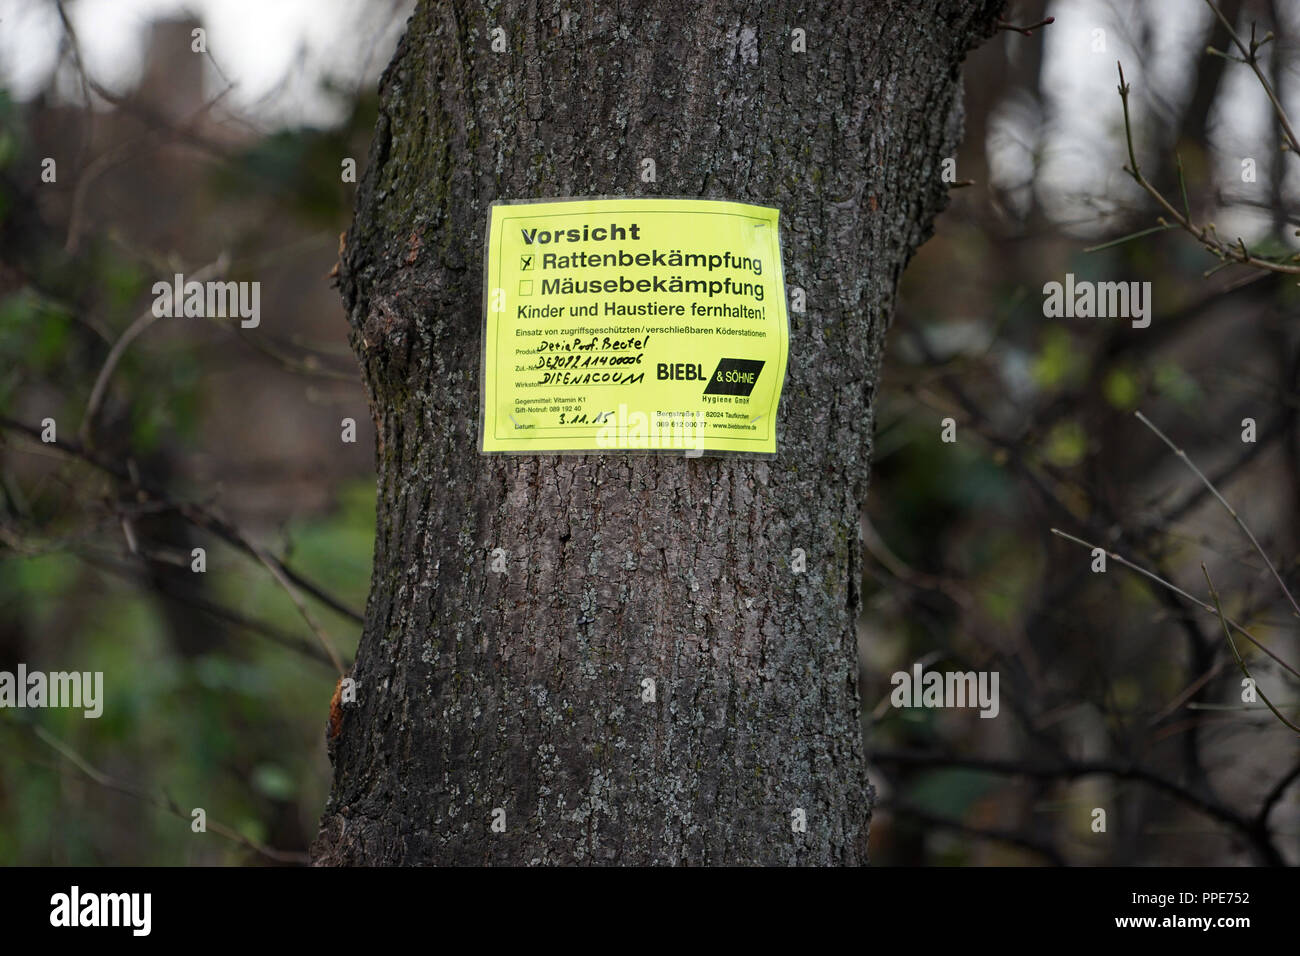 Warning sign 'Caution Rat Control' in the green area in the Luisenstrasse at Koenigsplatz. - Stock Image